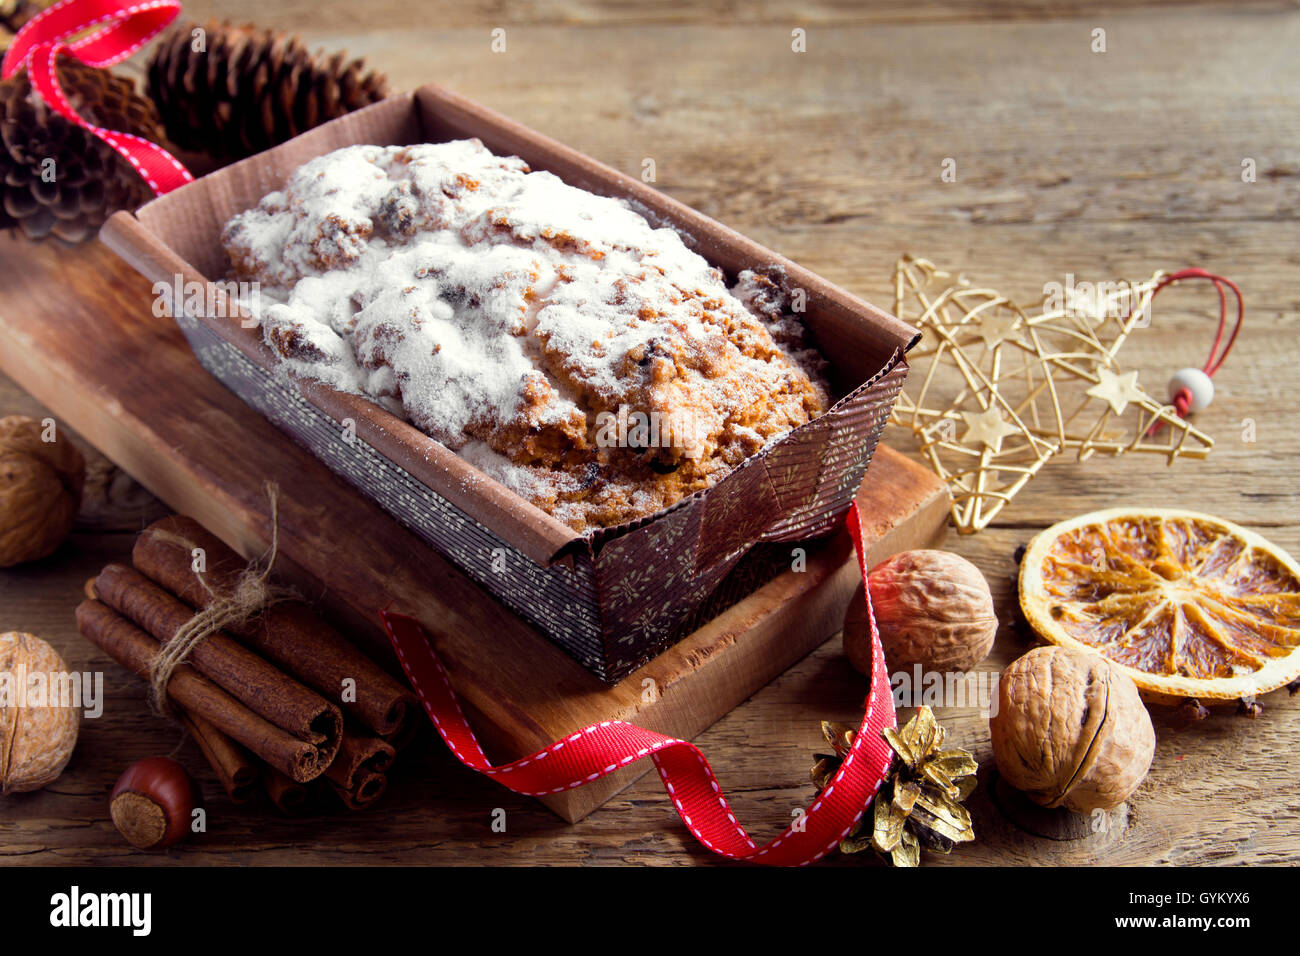 Traditional fruitcake for Christmas with decoration and ornaments - homemade Christmas pastry - Stock Image